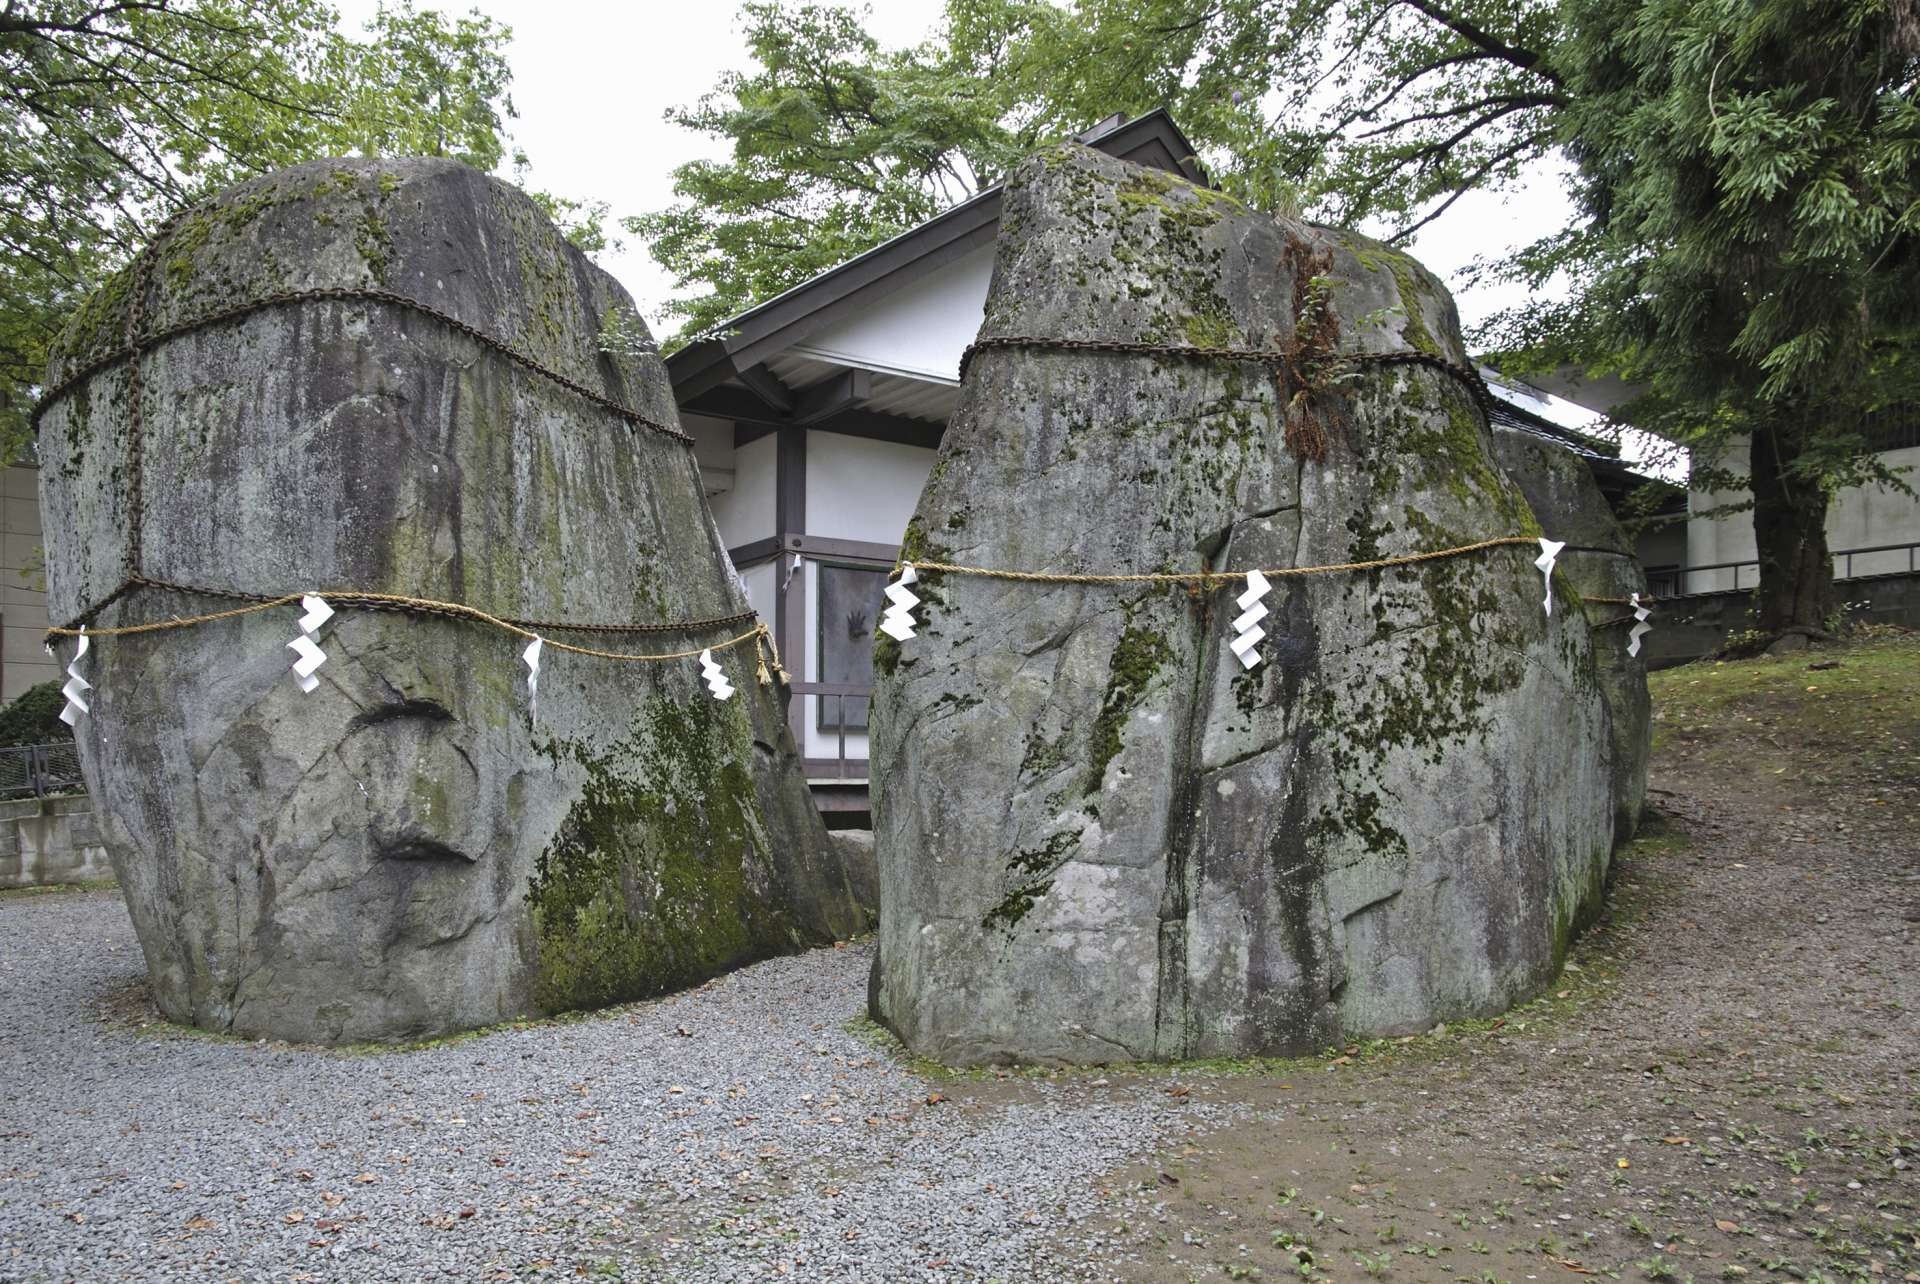 The large rocks of Mitsuishi Shrine